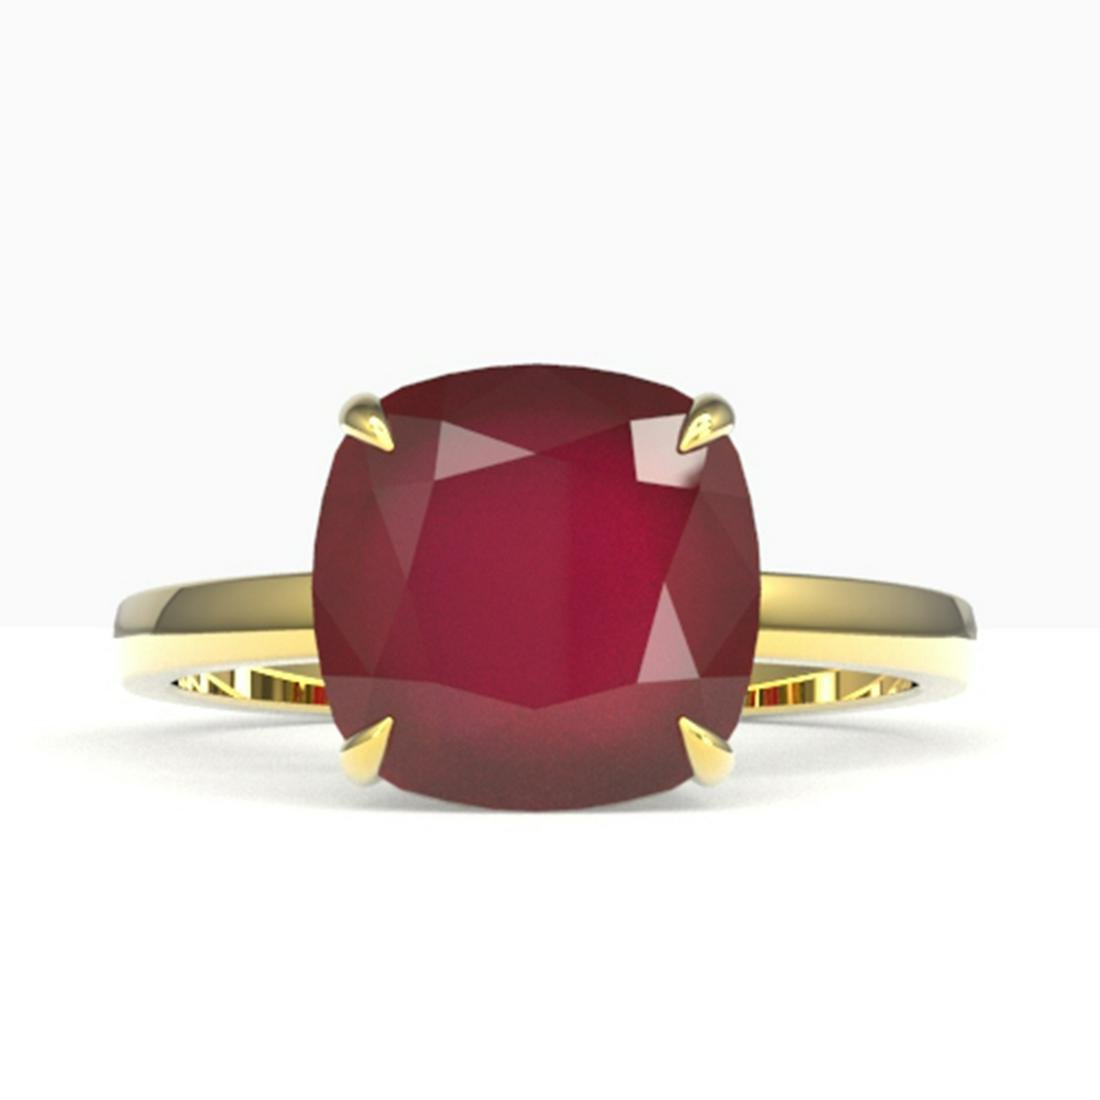 6 ctw Ruby Solitaire Ring 18K Yellow Gold - REF-63K6W -